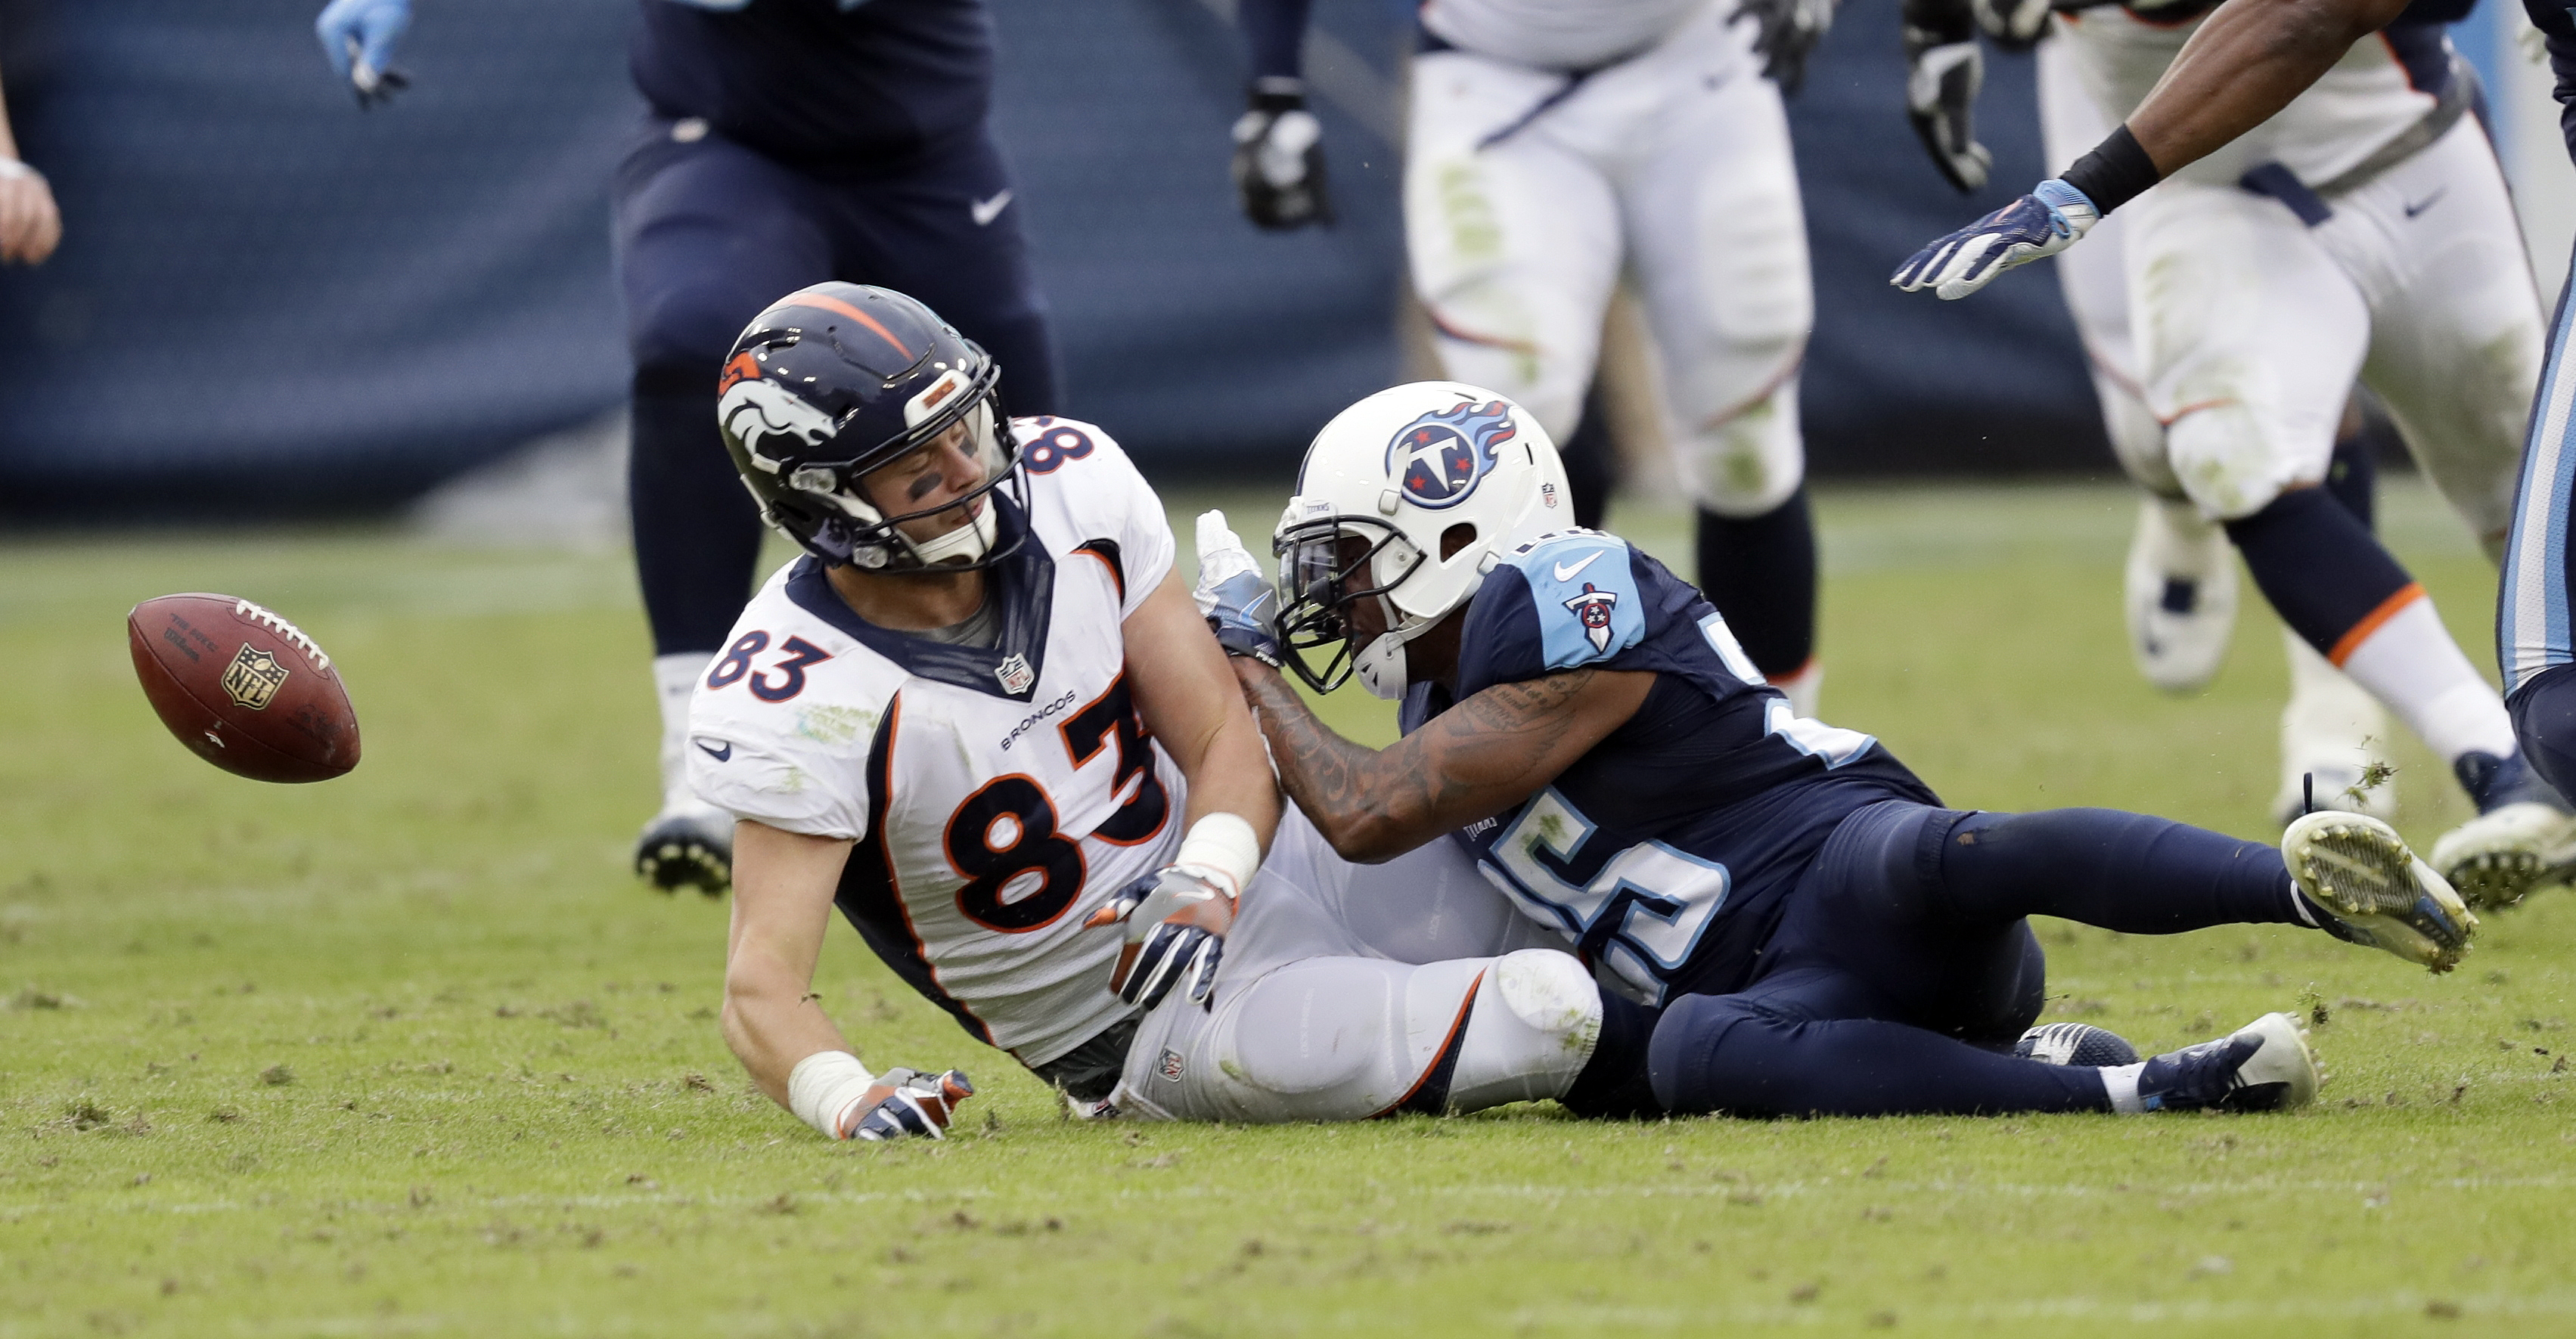 Denver Broncos tight end A.J. Derby (83) fumbles the ball as Tennessee Titans defensive back Rashad Johnson (25) closes in during the final minutes of the fourth quarter of an NFL football game Sunday, Dec. 11, 2016, in Nashville, Tenn. The Titans recover